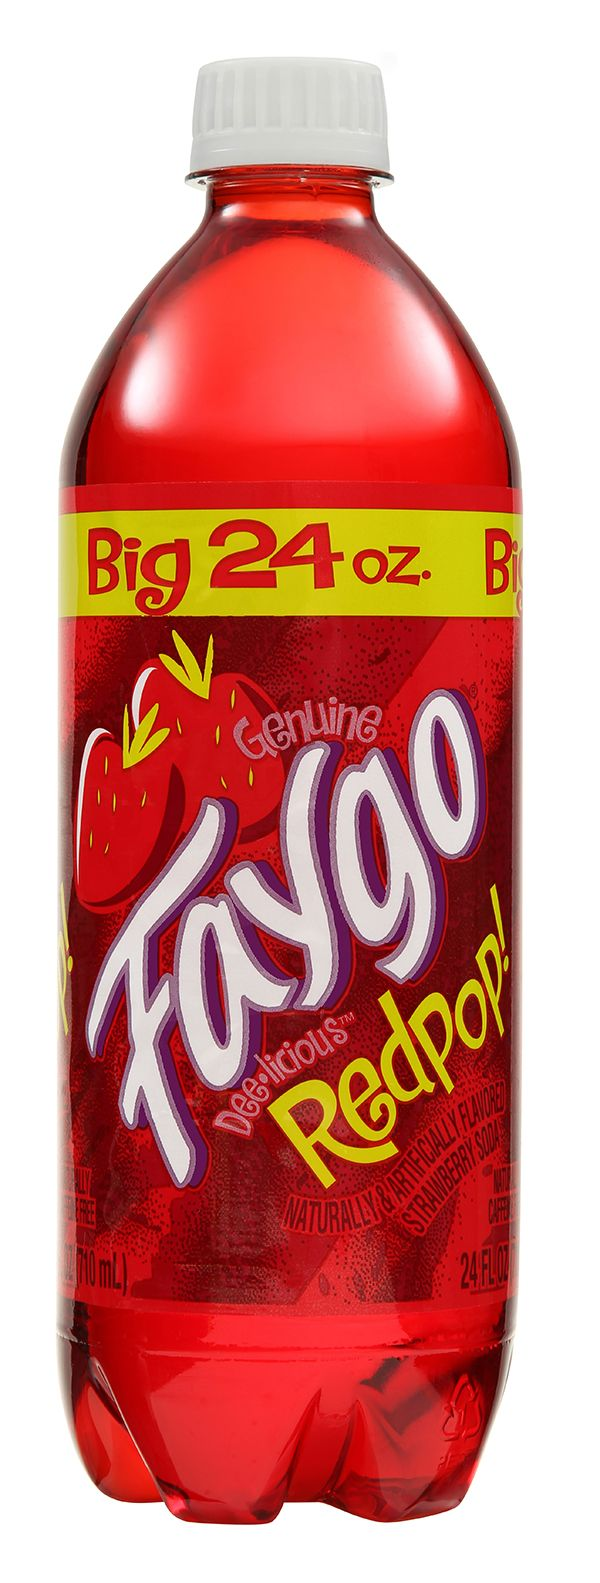 Faygo Red Pop... so many great memories drinking this as a kid at my grandparents' house and with my dad on the boat.